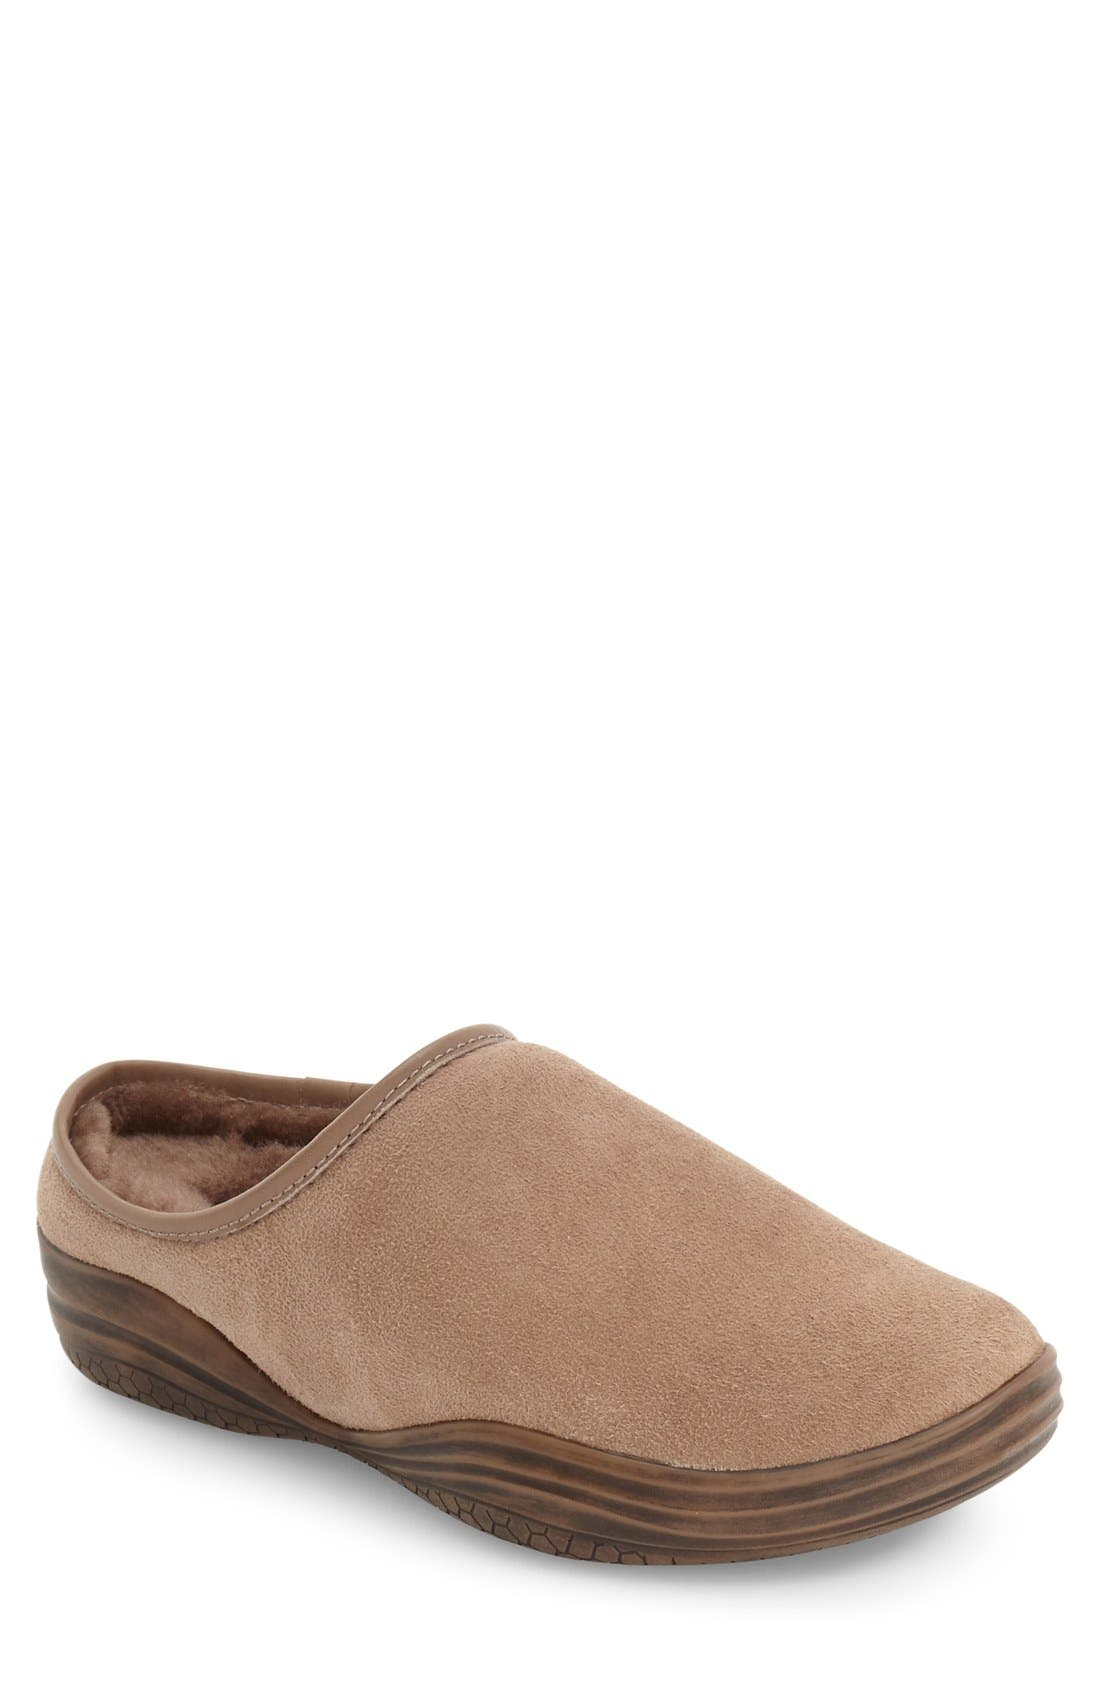 'Stamford' Genuine Shearling Clog Slipper,                         Main,                         color, Stone Shearling/ Leather